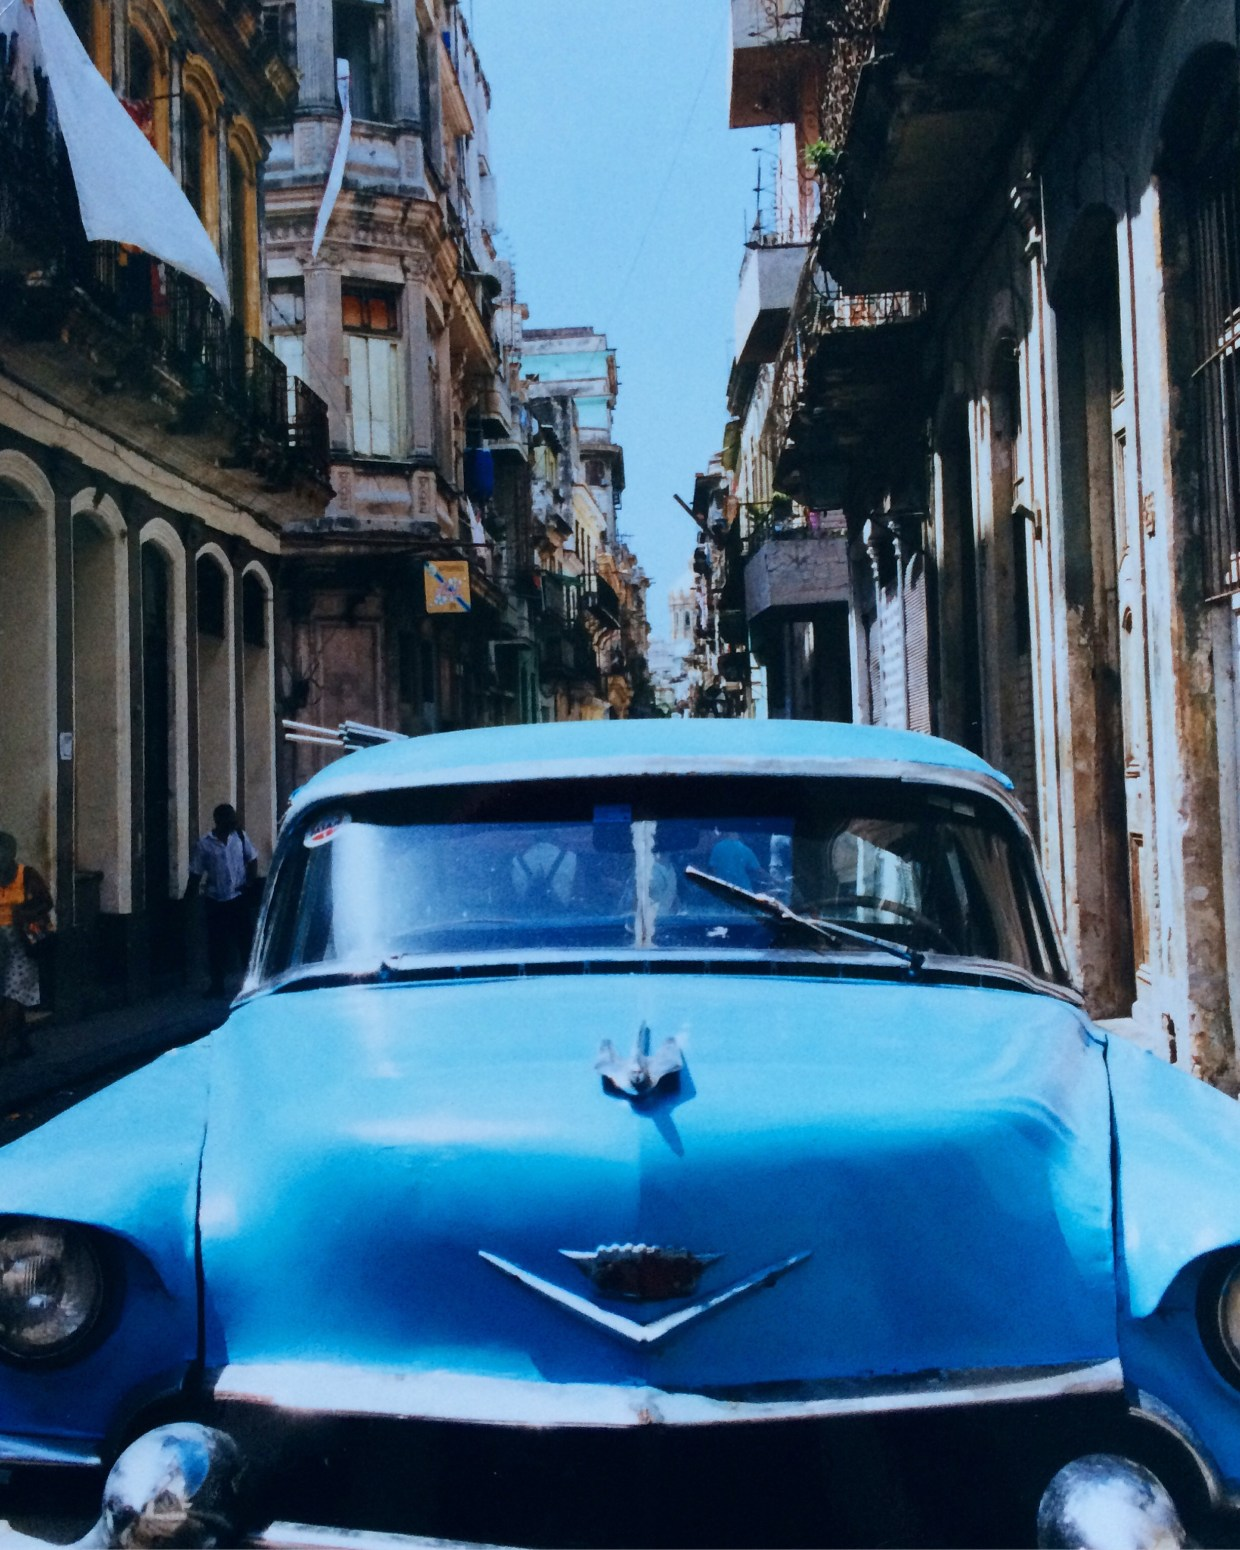 Old car on a street in Havana, Cuba